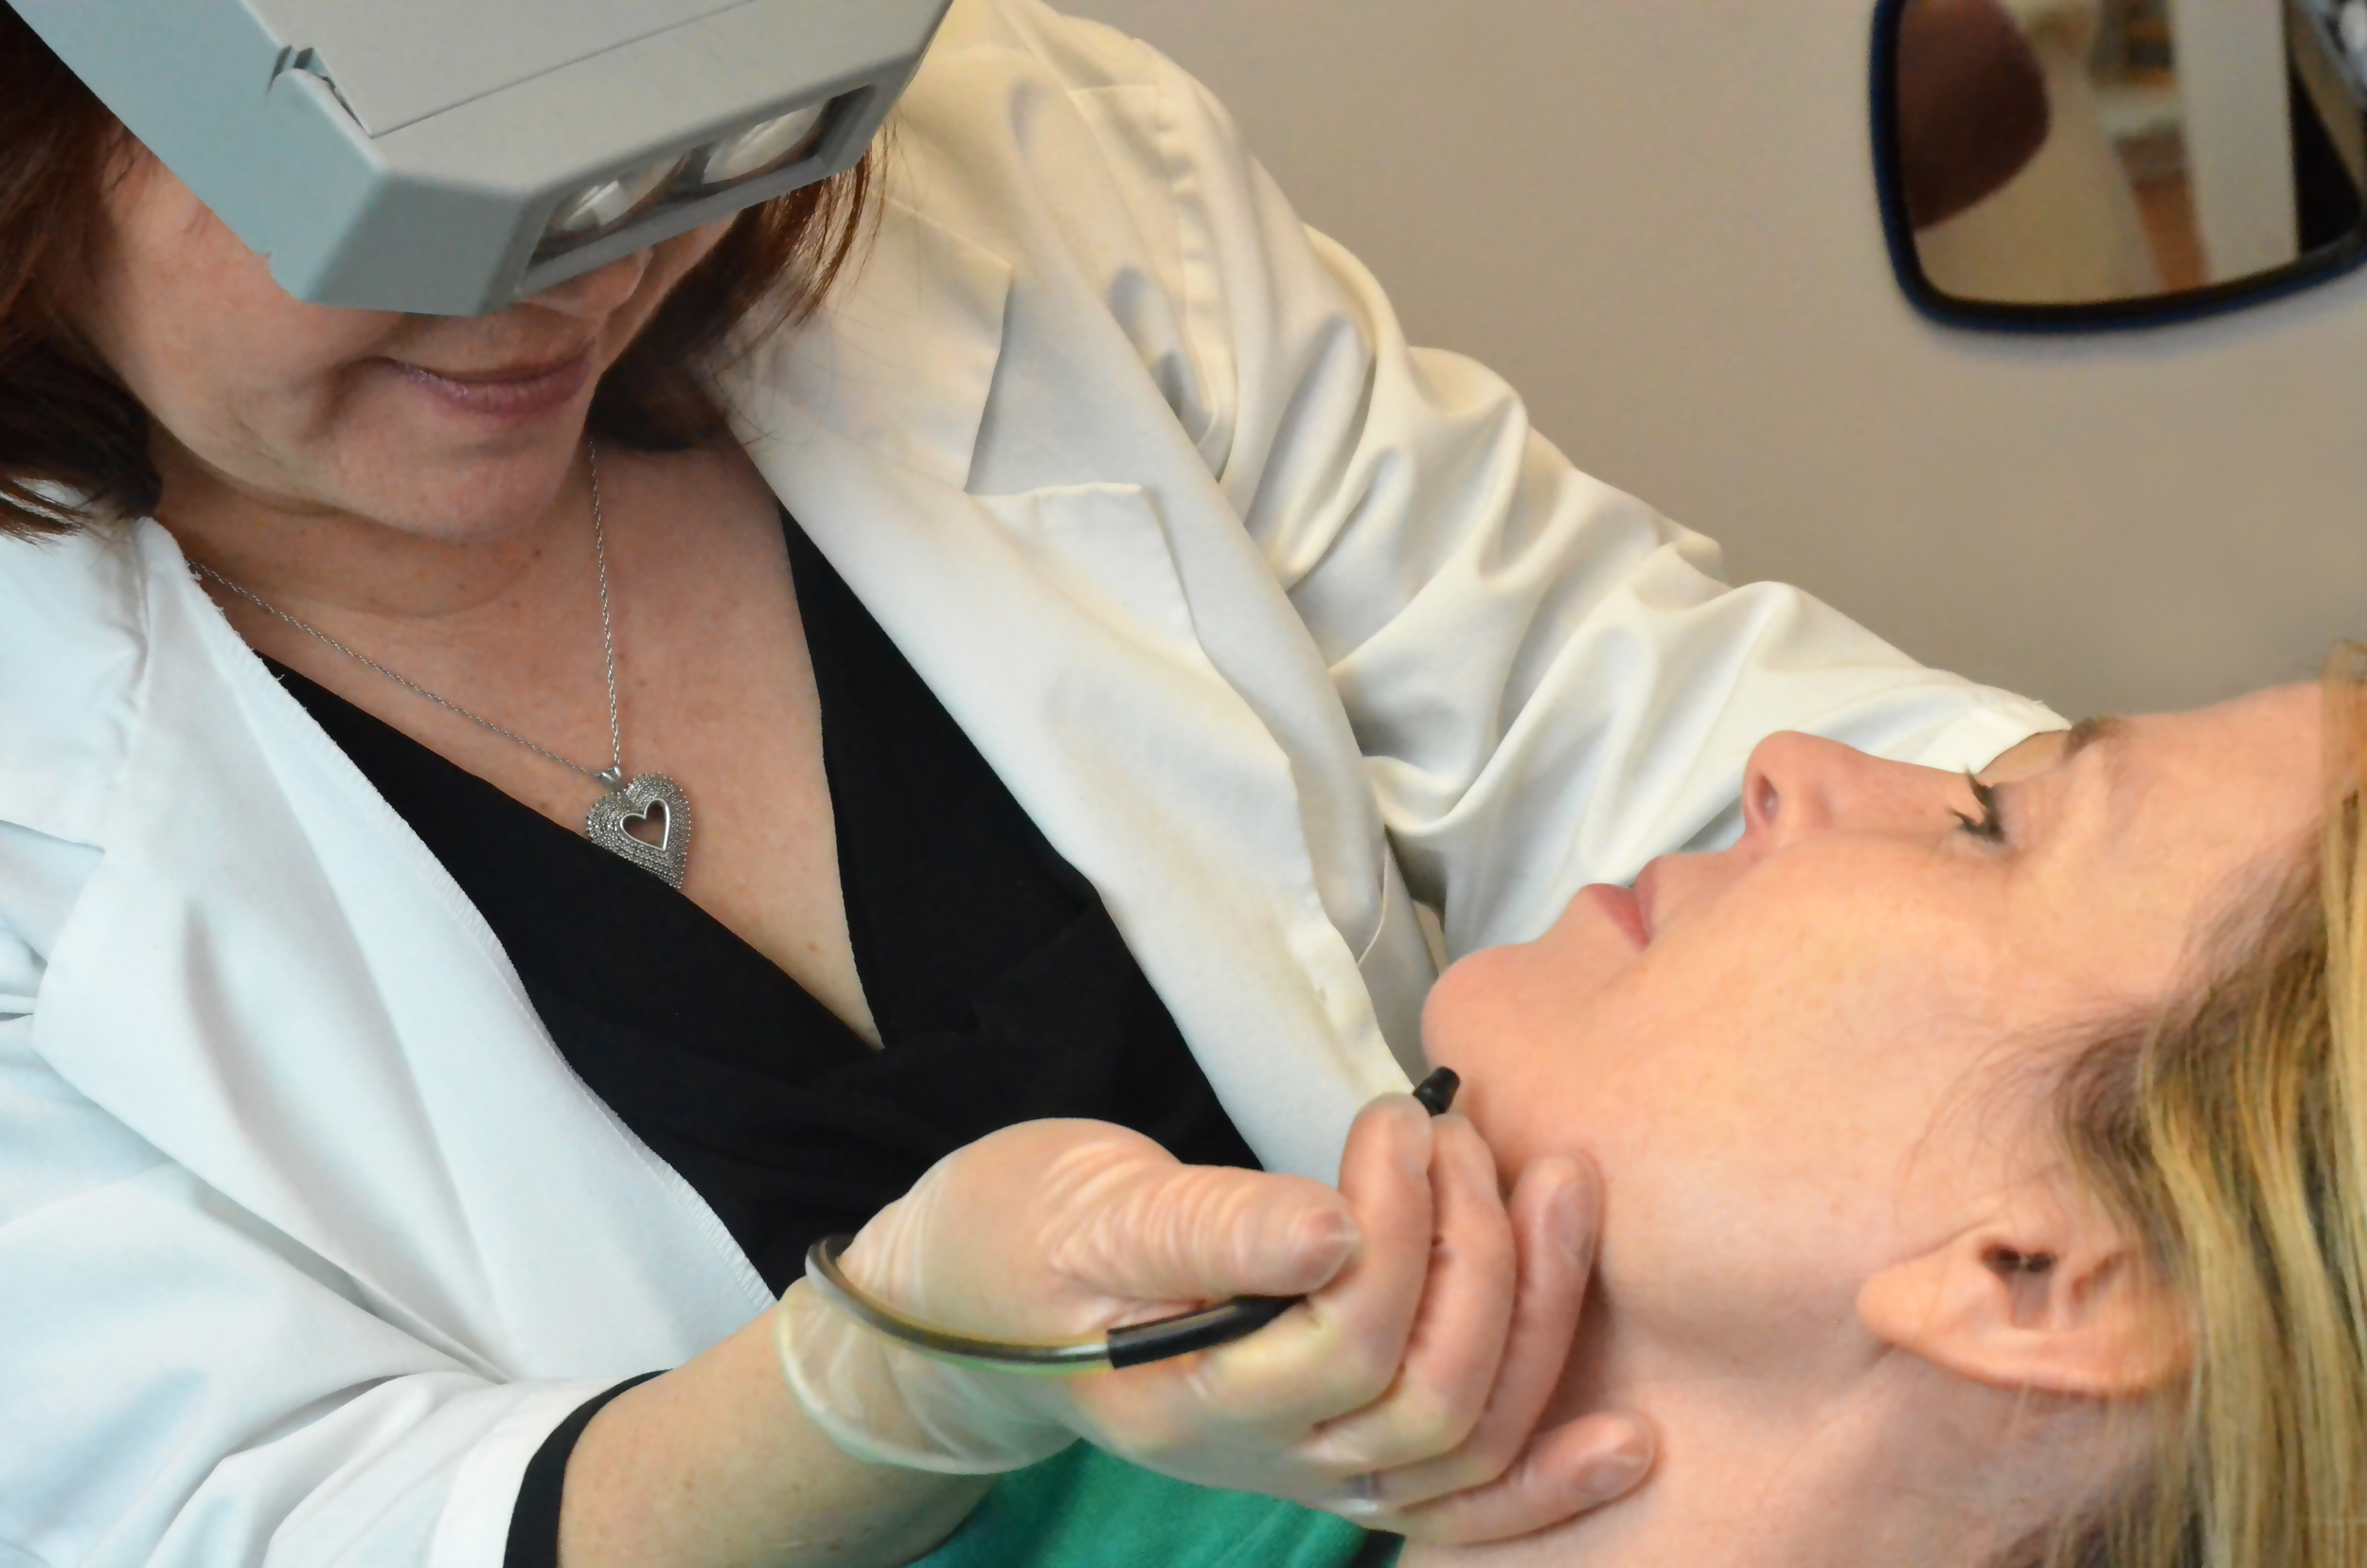 Teresa performs electrolysis on a client